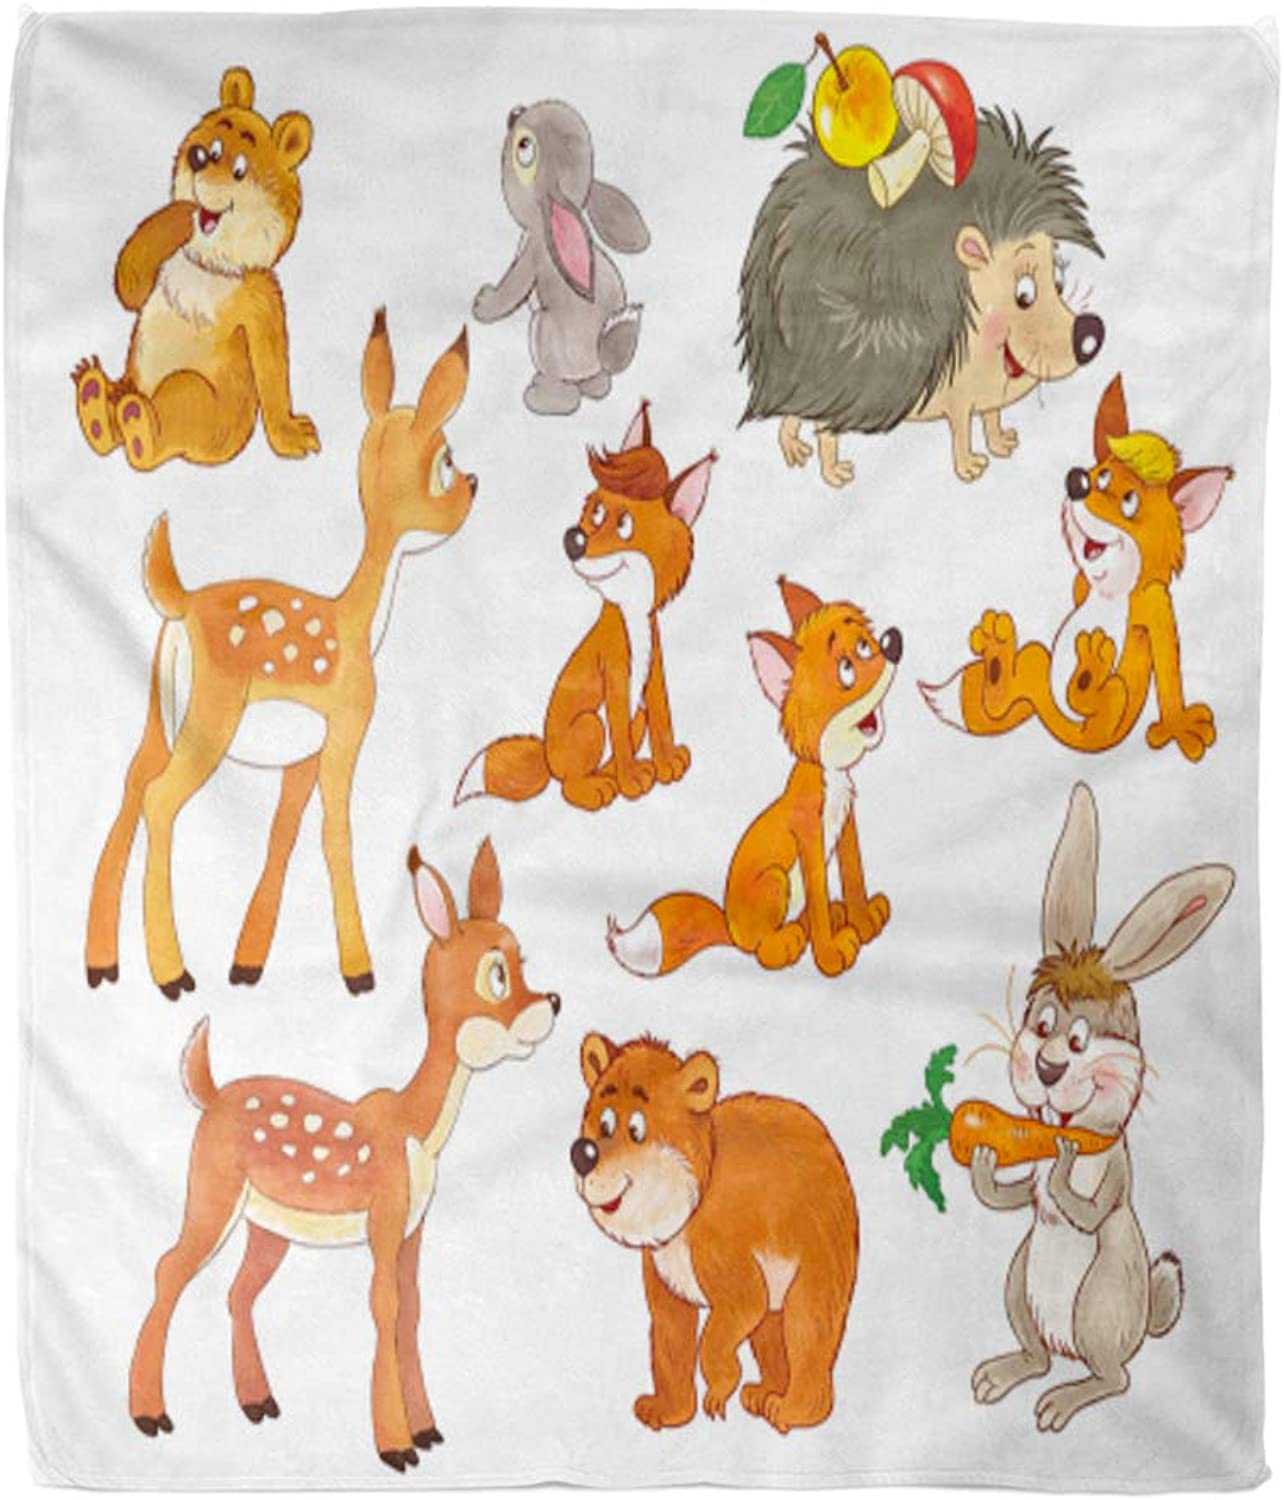 Emvency Throw Blanket Warm Cozy Print Flannel Cute Woodland Animals Small of Baby Bears Deer Hare Rabbit Foxes and Hedgehog Comfortable Soft for Bed Sofa and Couch 50x60 Inches